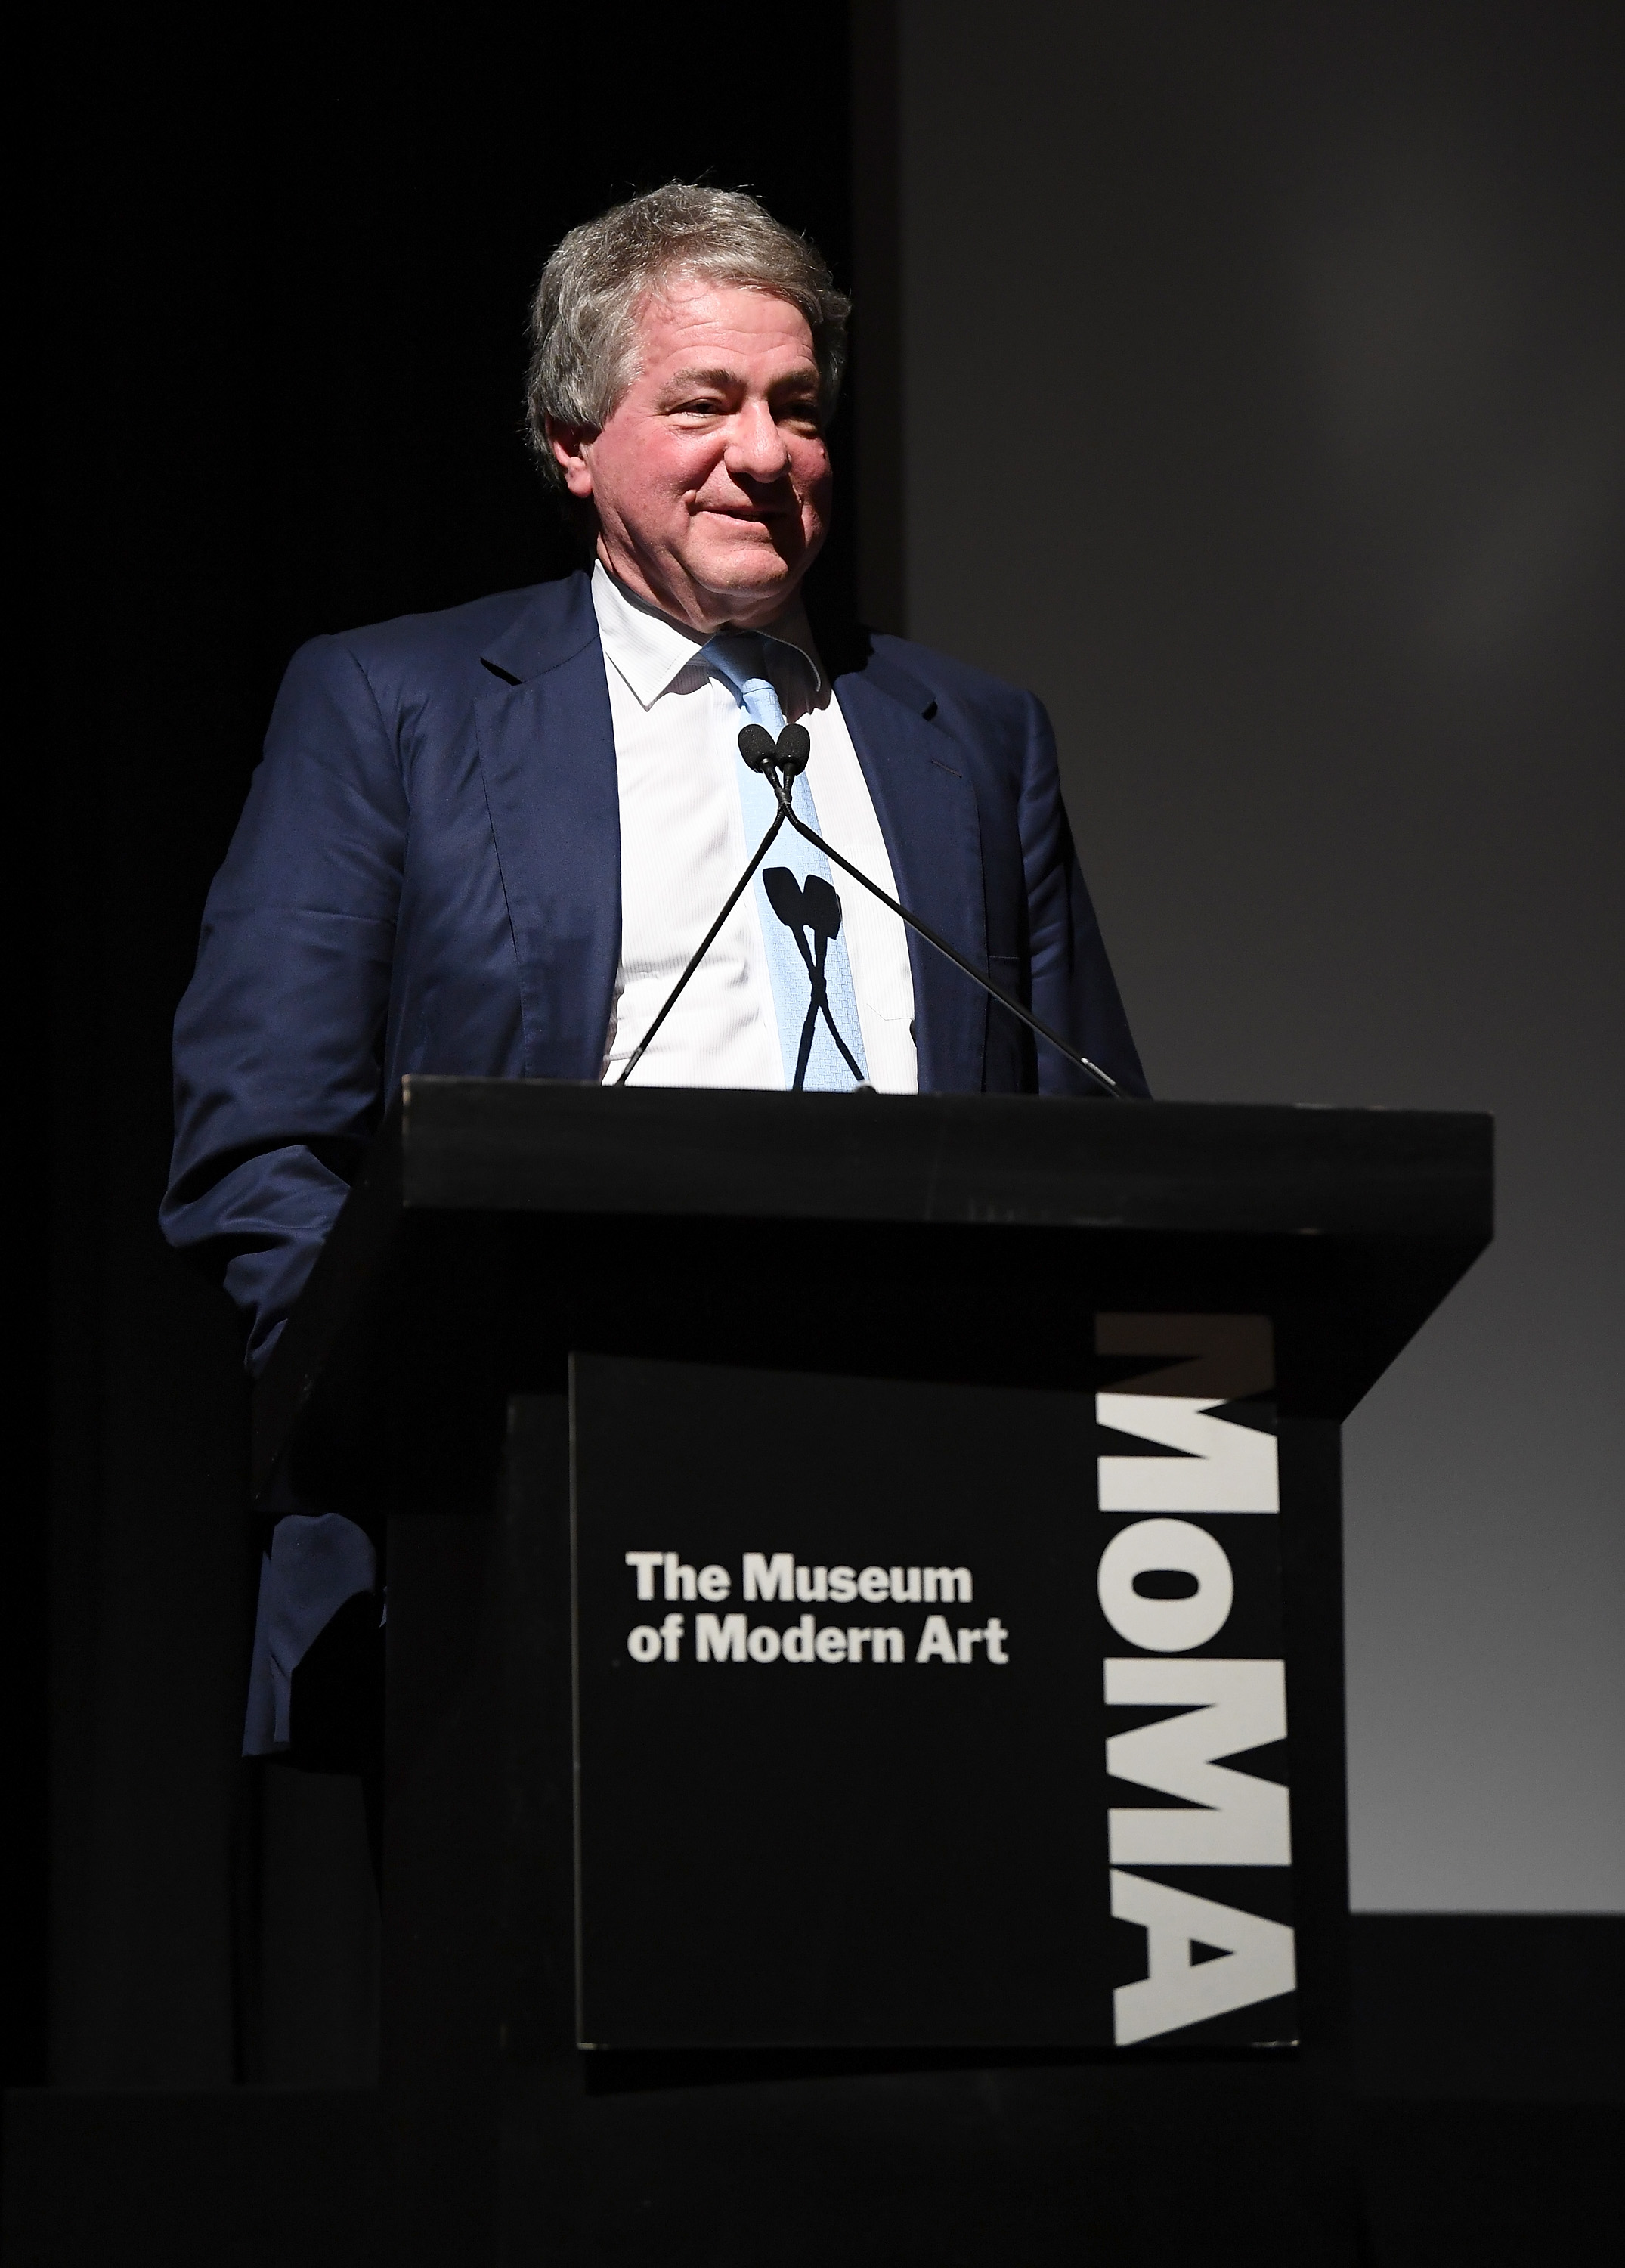 MoMA Chairman Disputes Jeffrey Epstein Ties, Blaming a 'Recording Error' at His Foundation + Other Stories